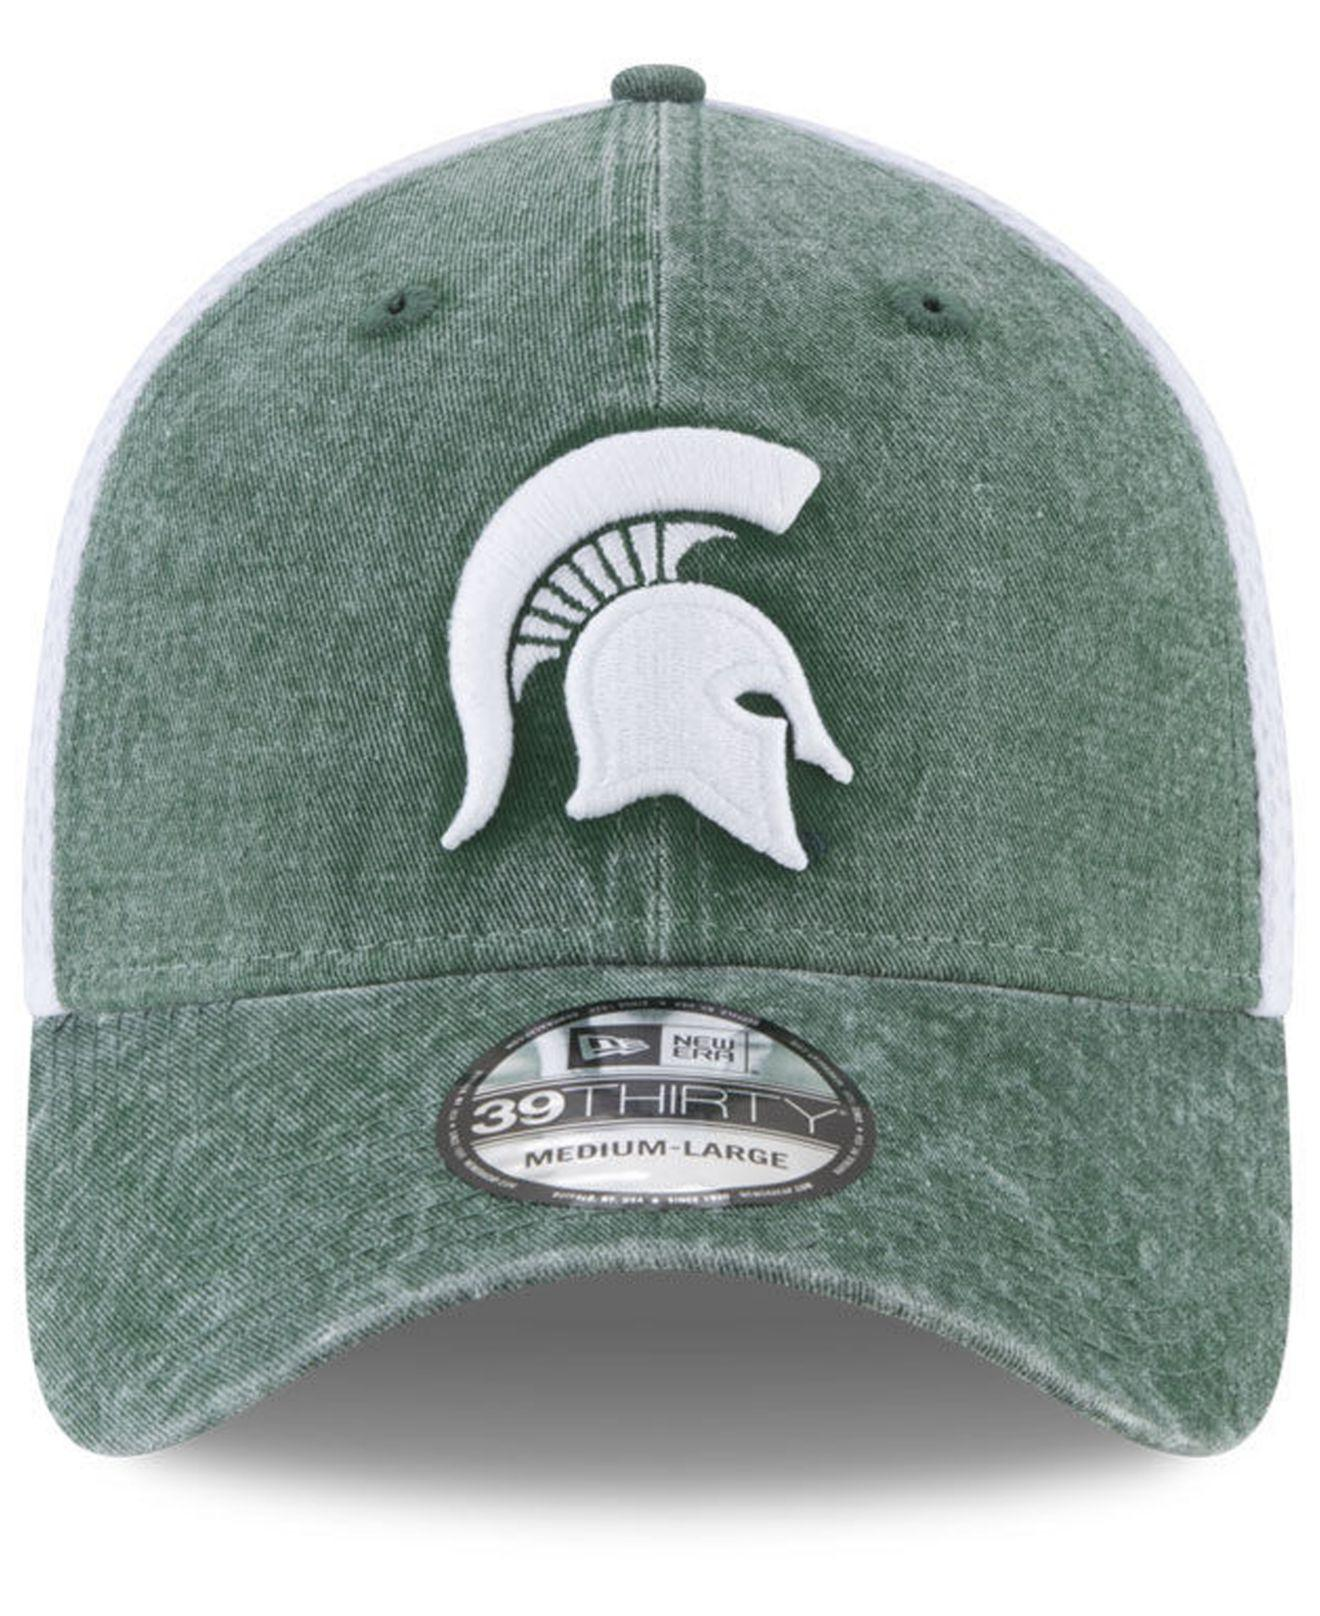 reputable site 9b5b9 a6765 KTZ Michigan State Spartans Washed Neo 39thirty Cap in Green for Men ...